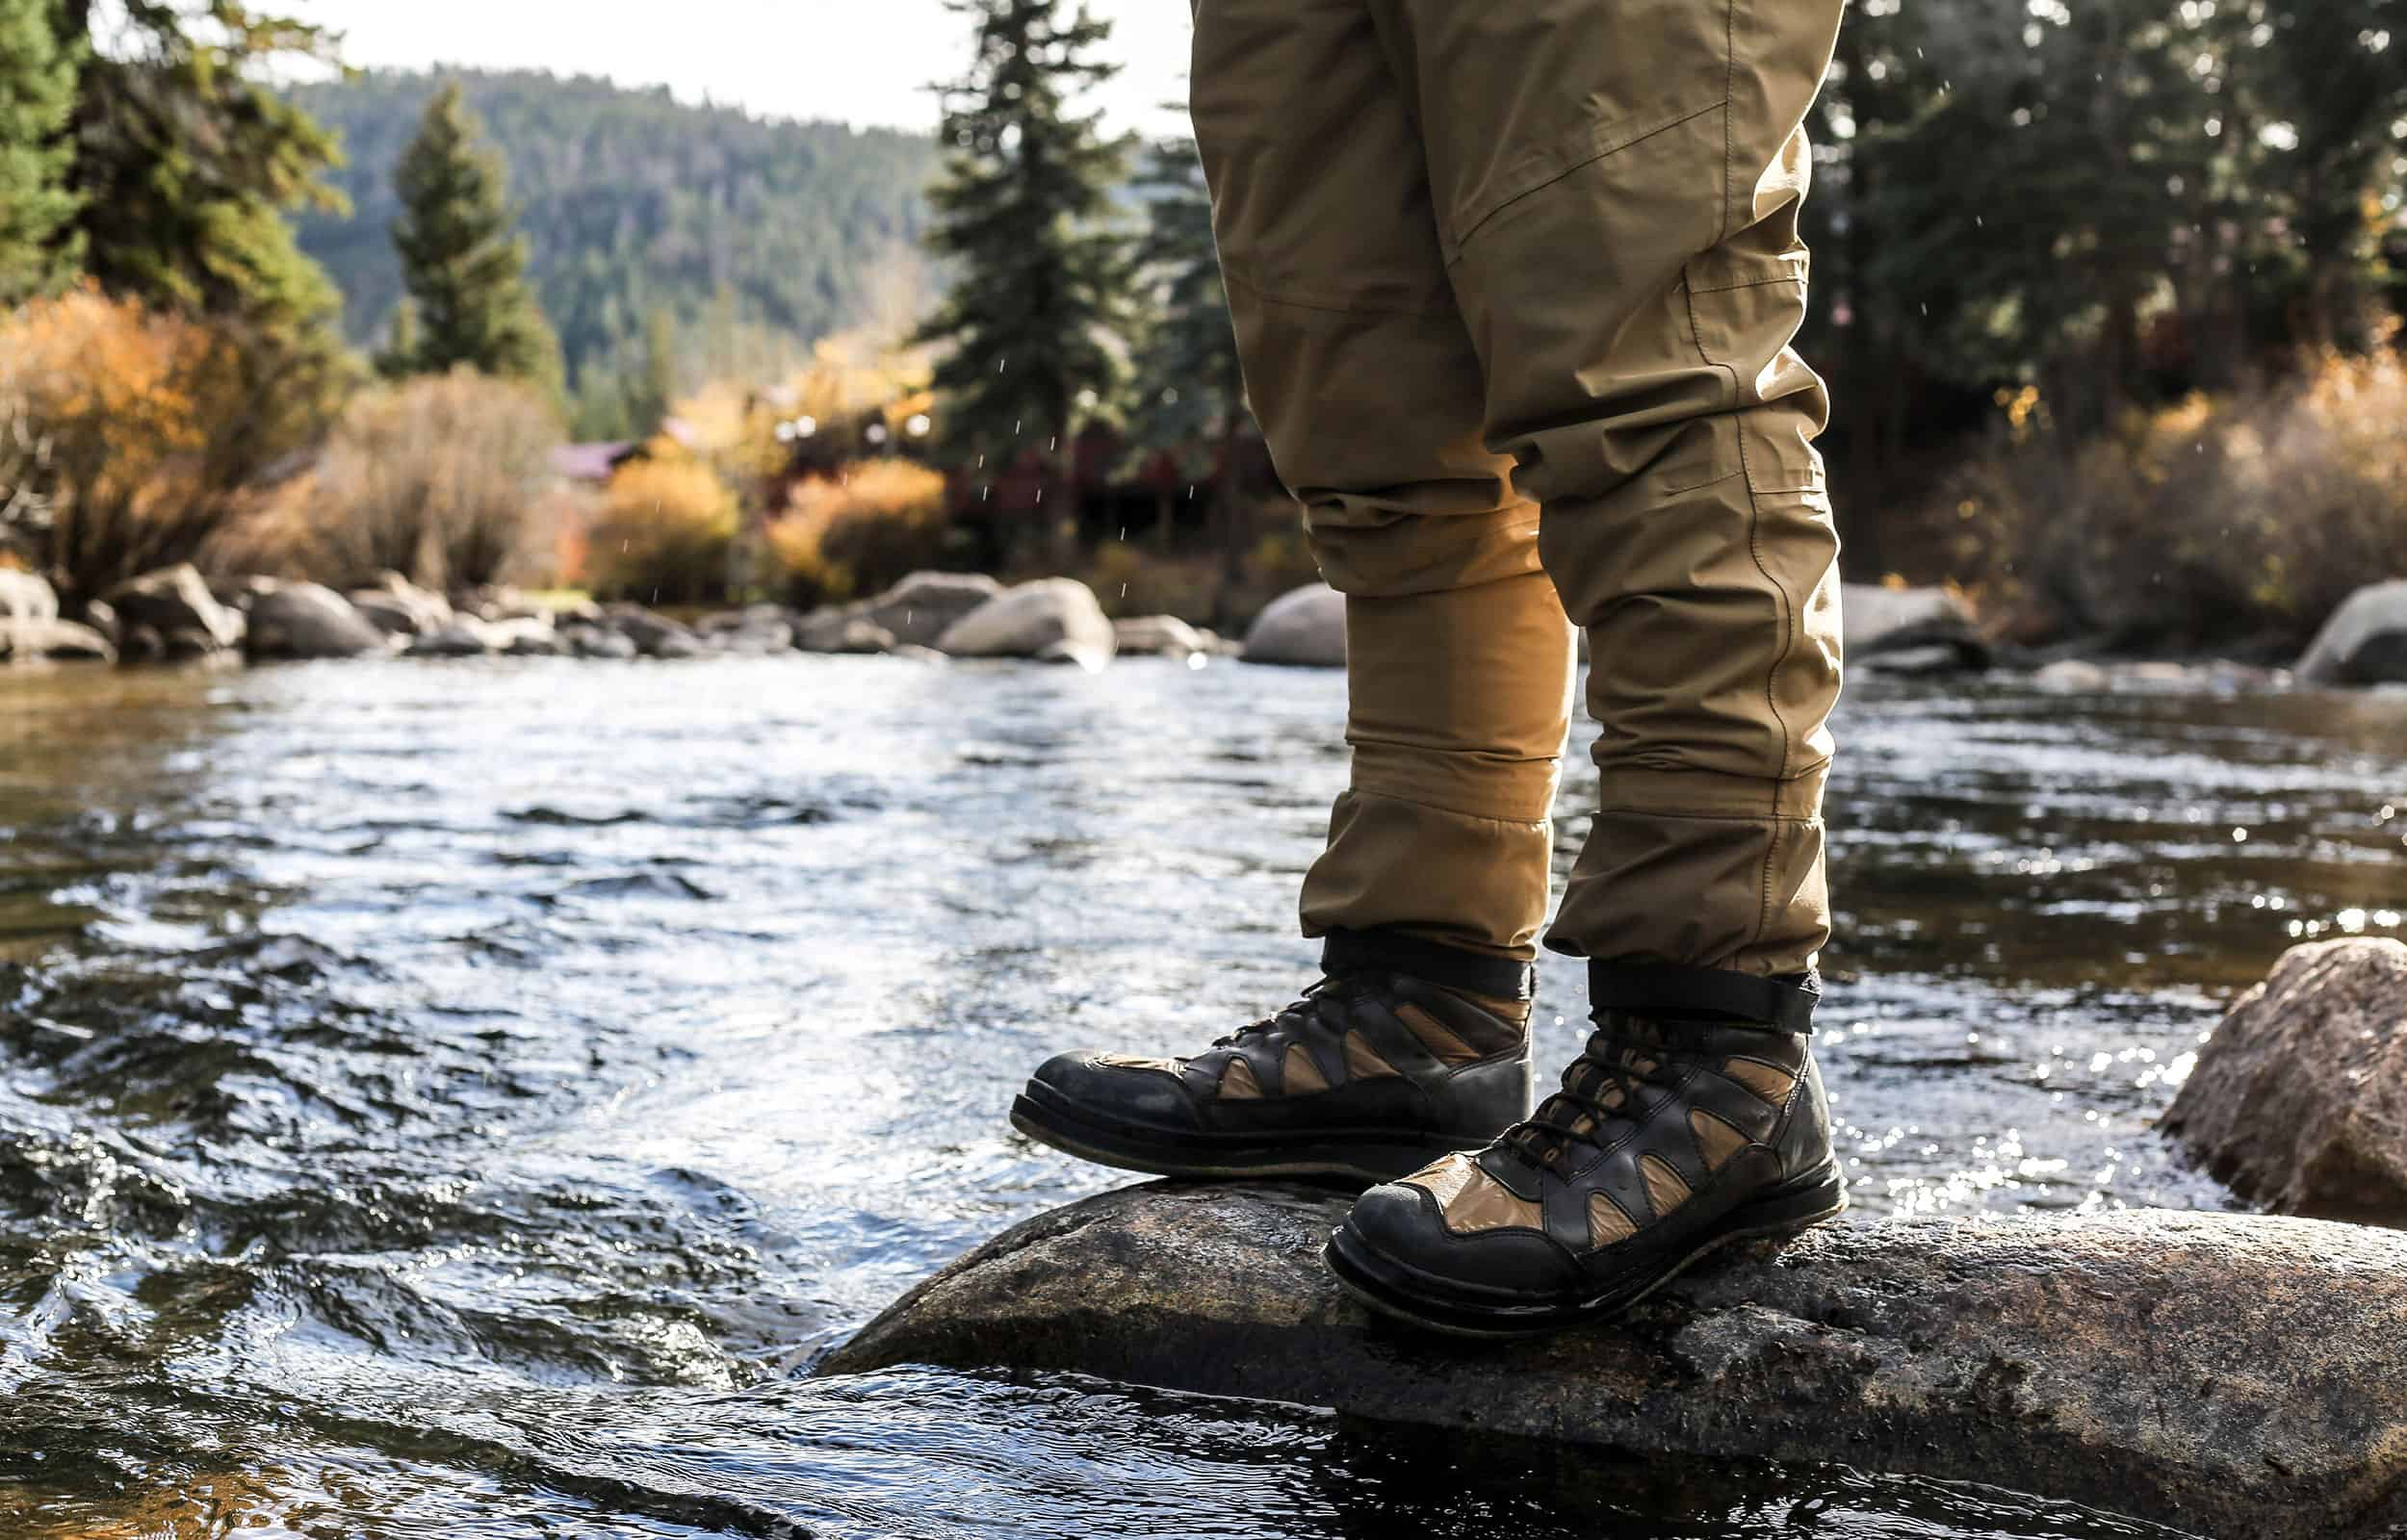 hiking boots standing on rocks in a river